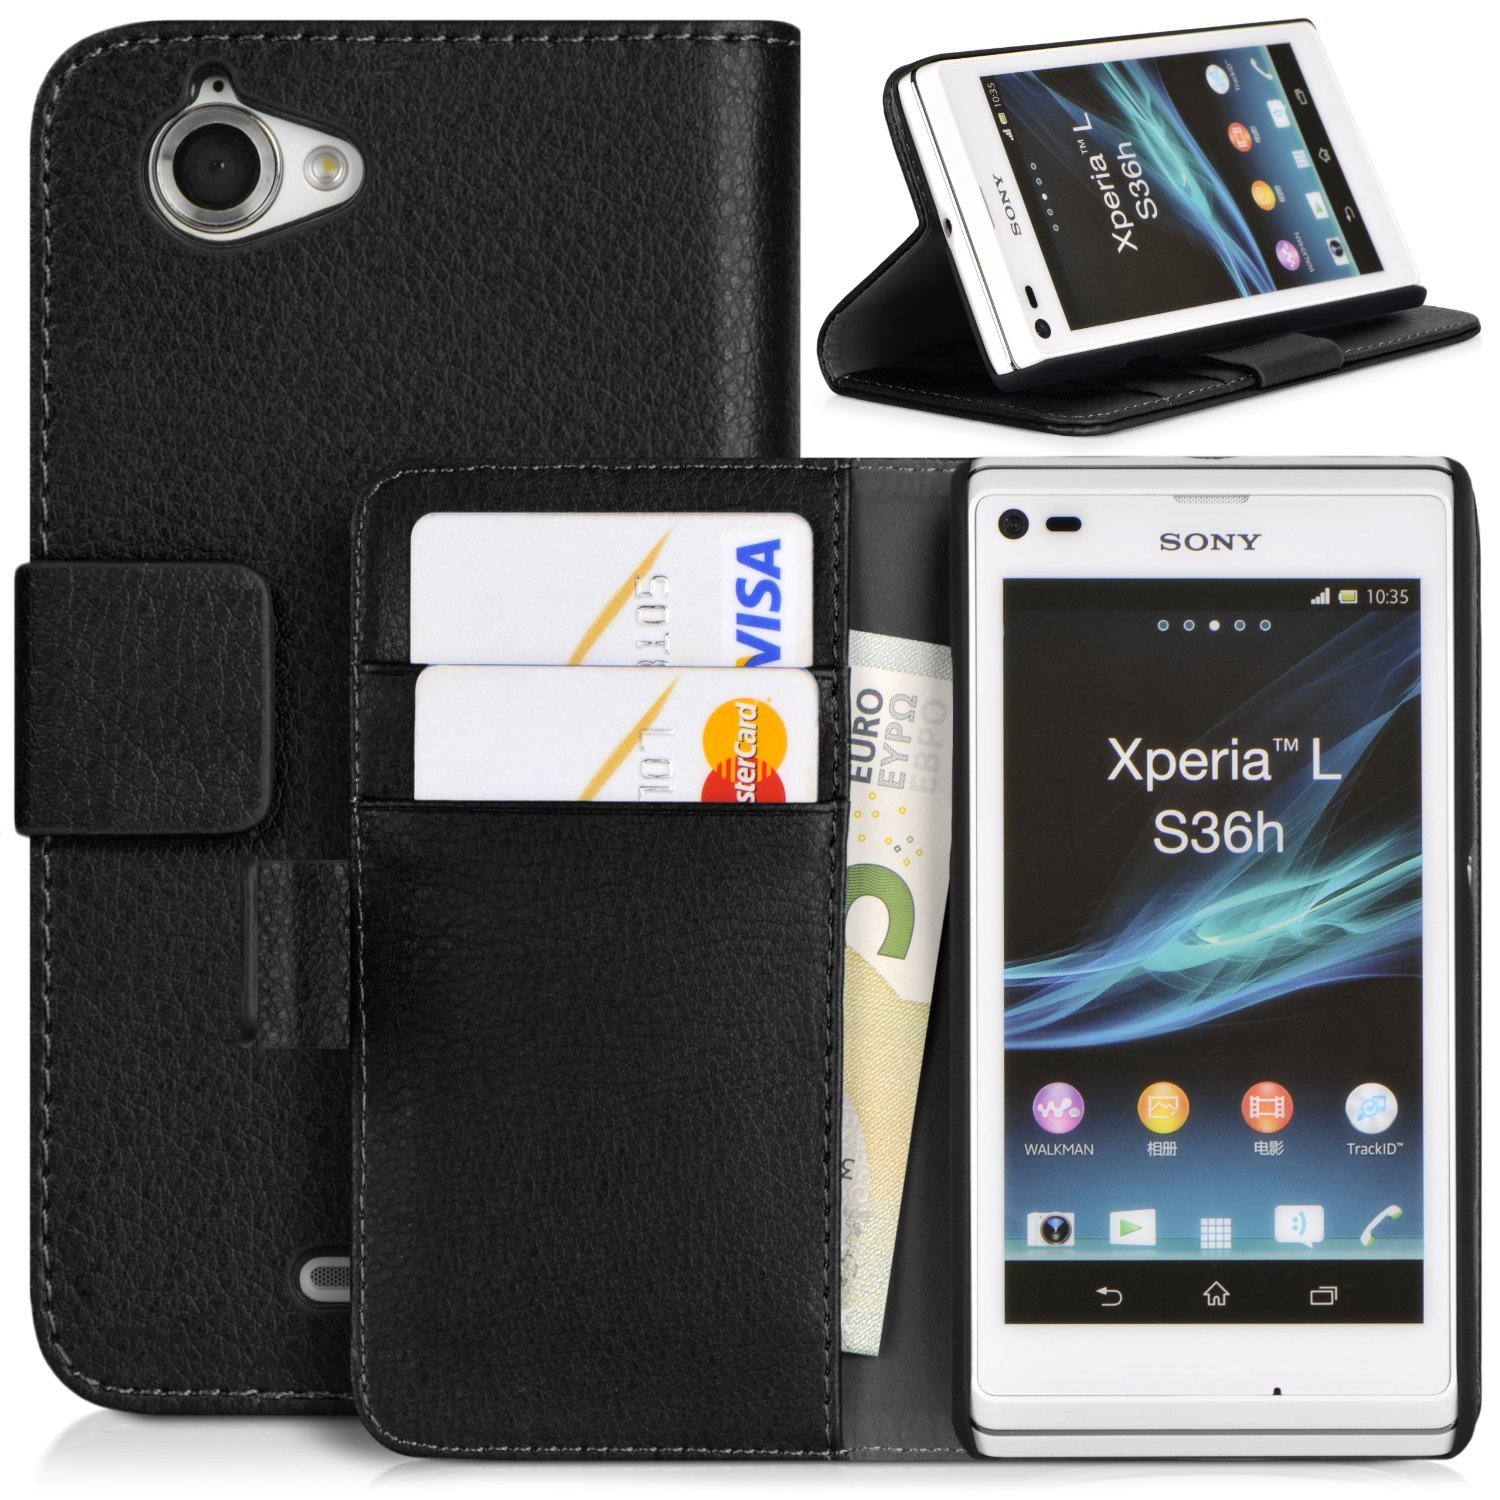 hot sale online 0d712 3c3a3 Topratesell Structure Wallet Flip Case Bag Pouch for Sony Xperia L C2104  C2105 with Credit Card Pockets and Stand-up Feature (Black)